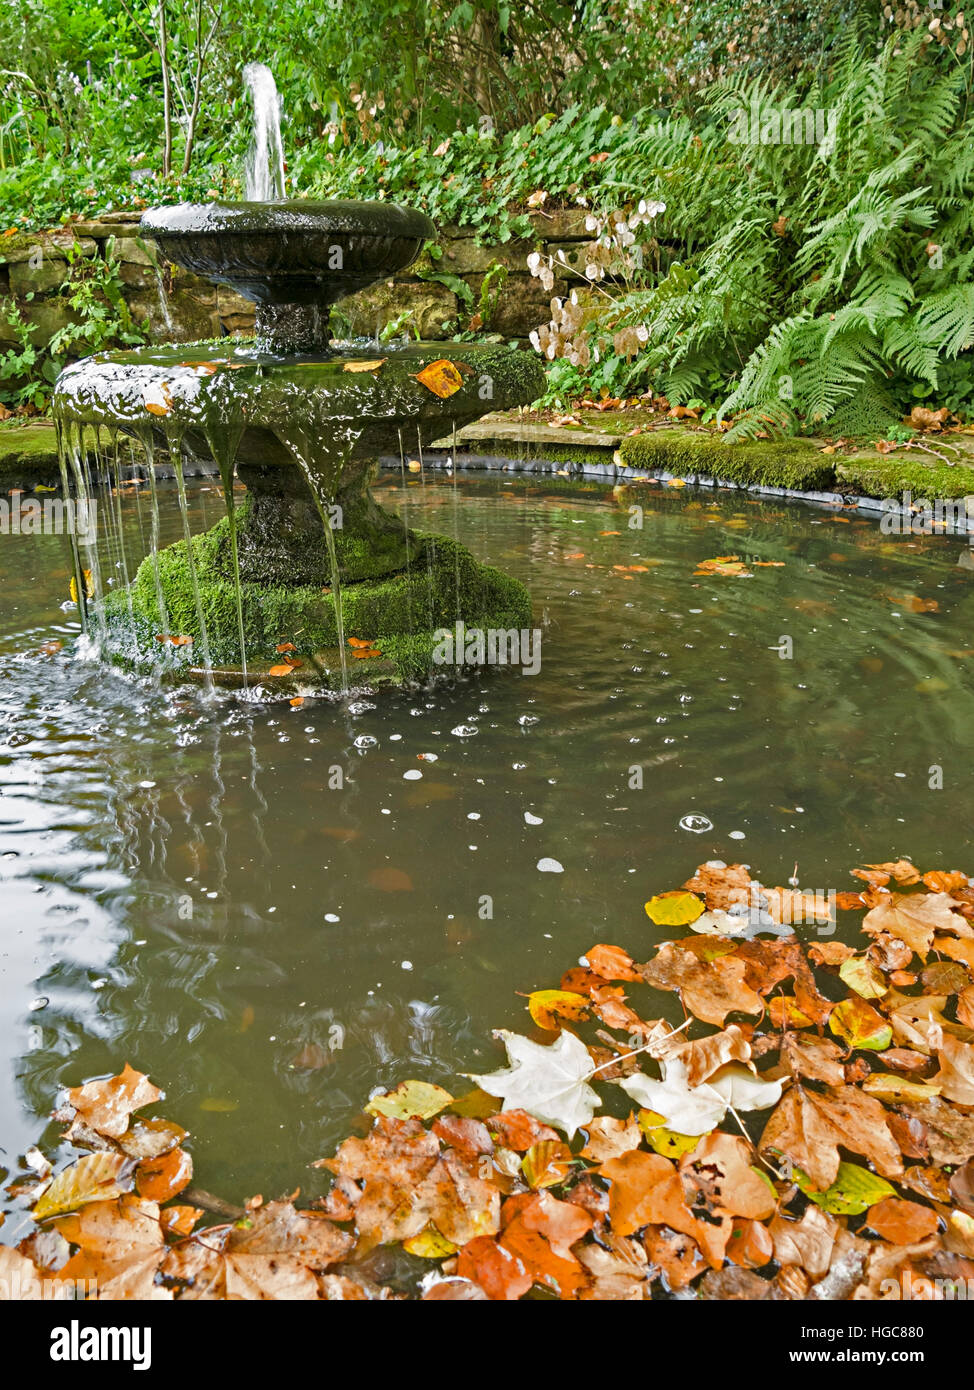 Garden Pond And Water Feature Stock Photos & Garden Pond And Water ...